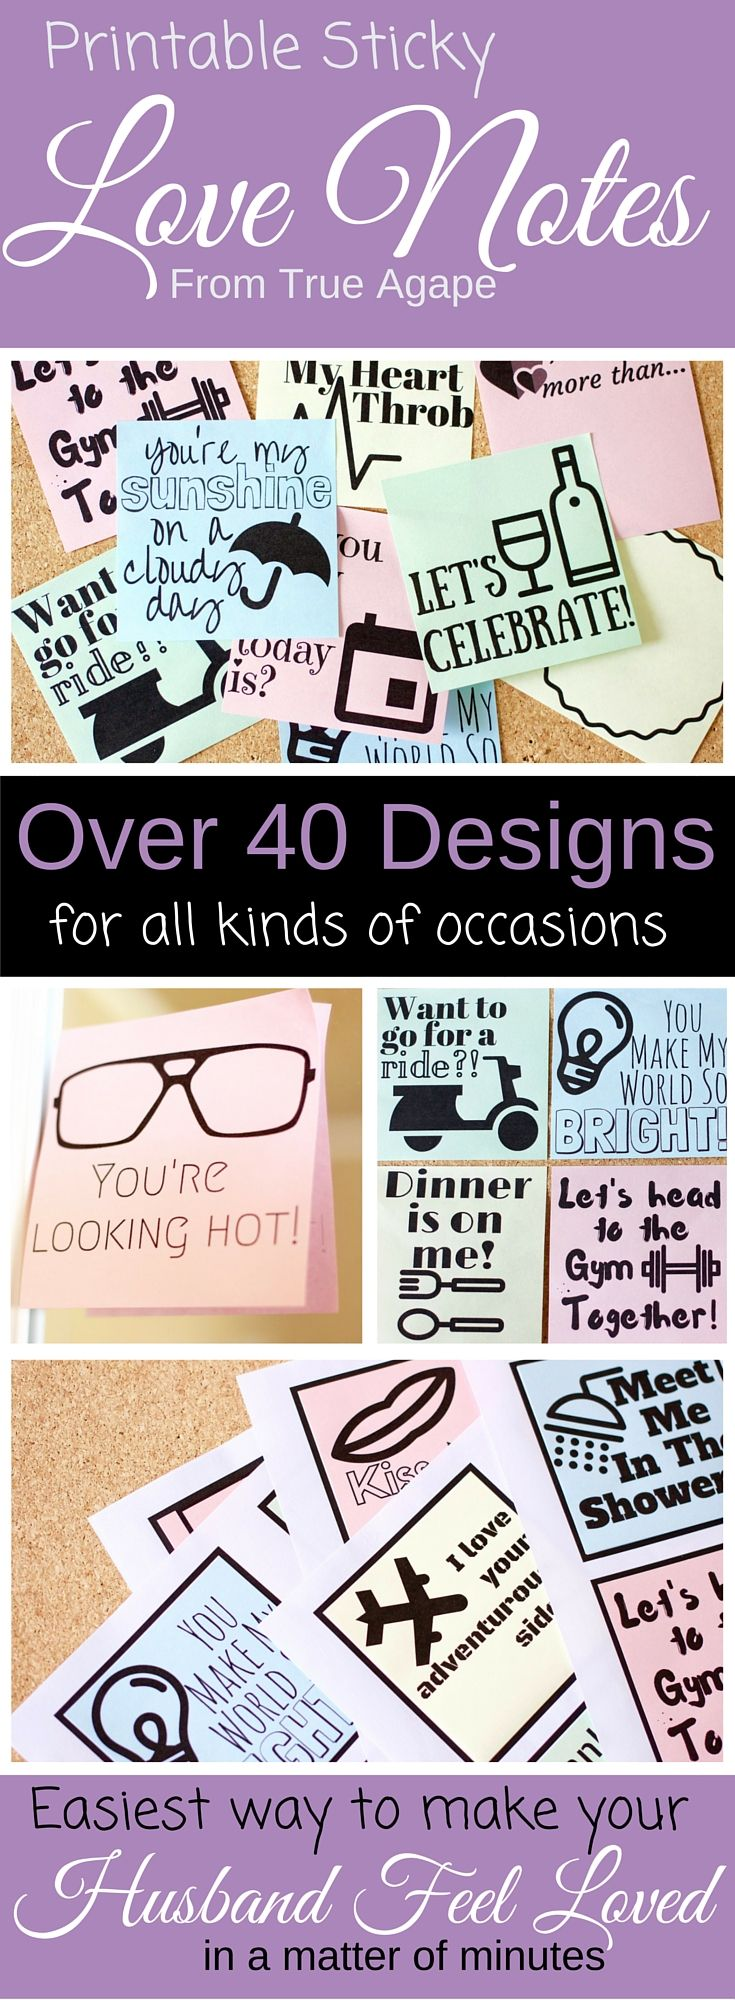 Printable sticky love notes with over 40 designs for all kinds of occasions. These are sure to make your man feel loved!